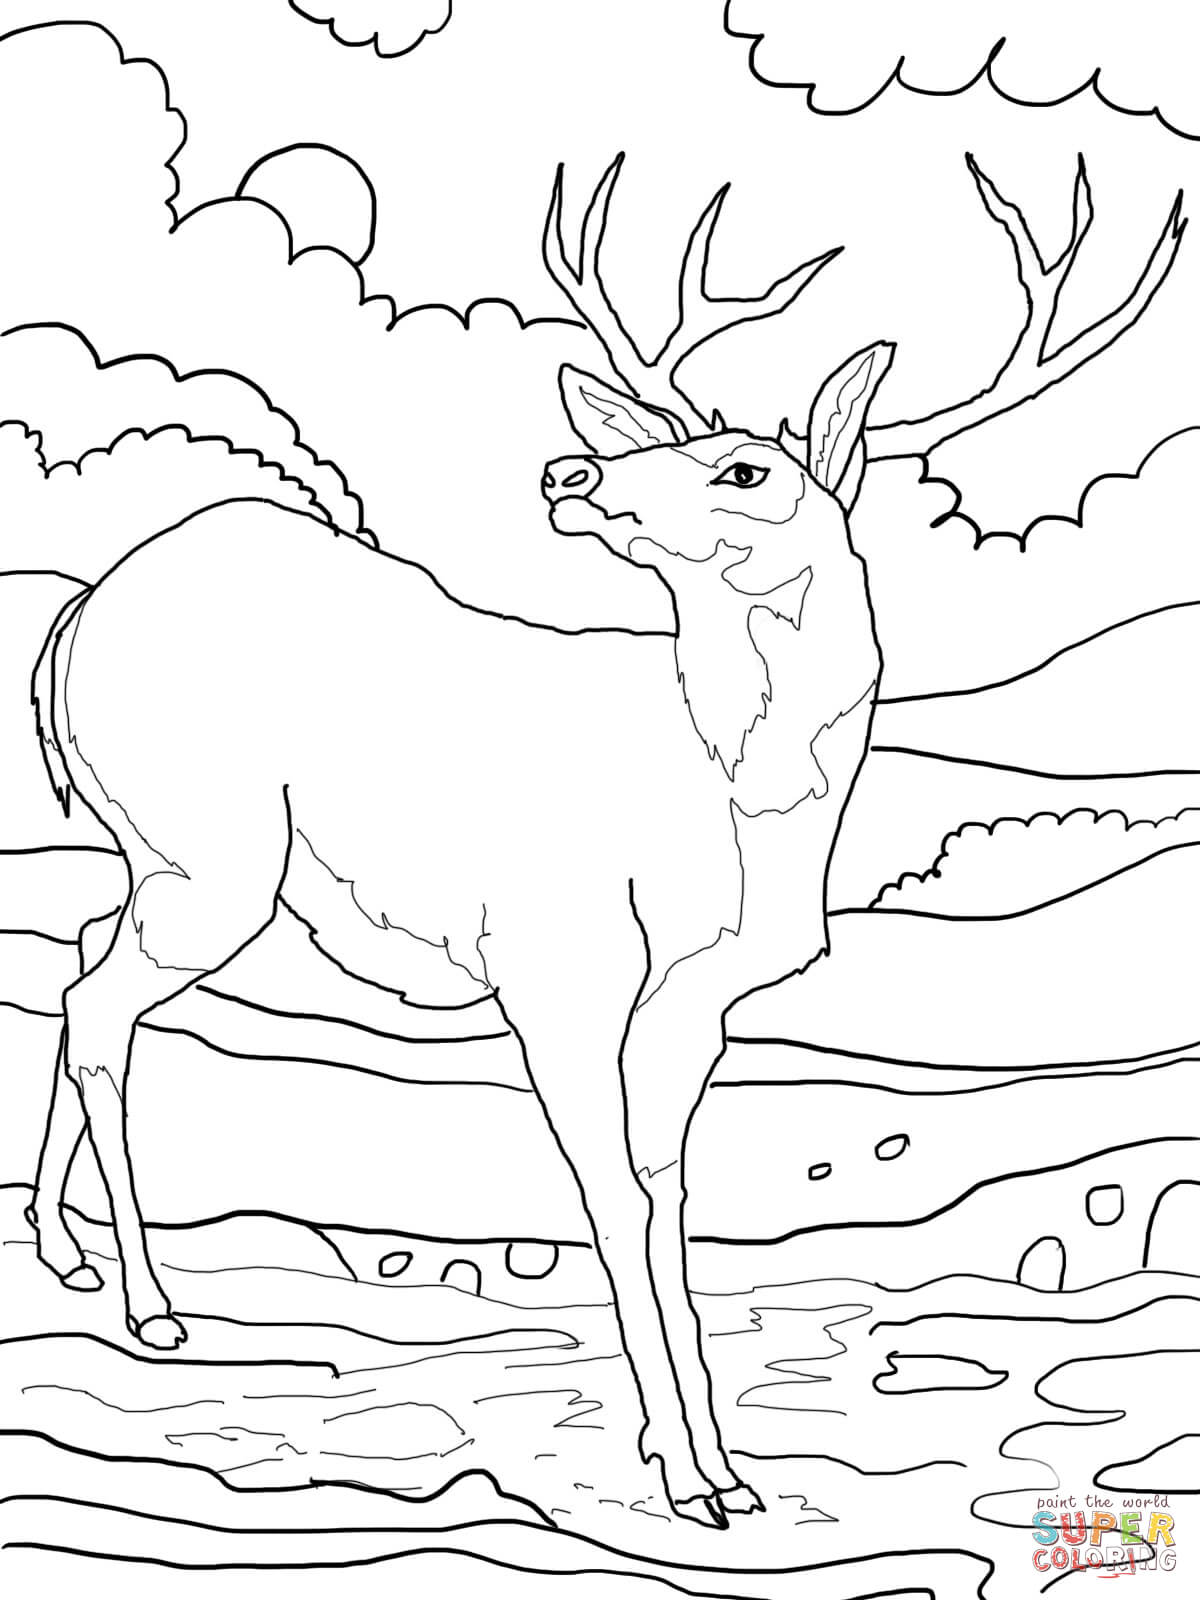 Black Tailed Mule Deer Coloring Page Free Printable Coloring Pages